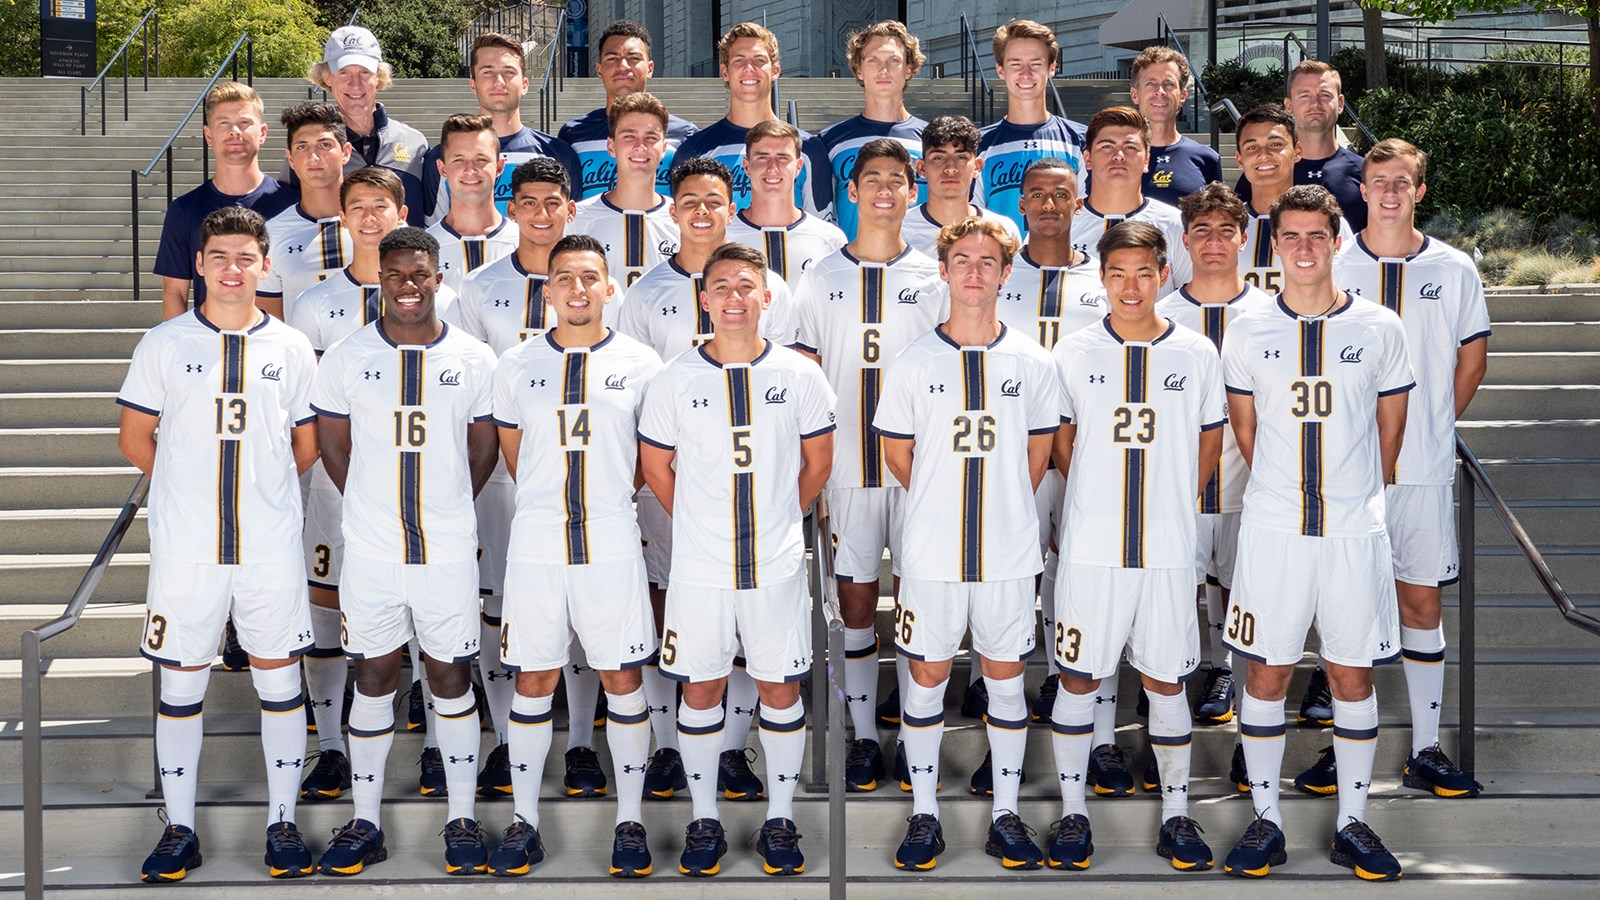 2019 Men S Soccer Roster University Of California Golden Bears Athletics